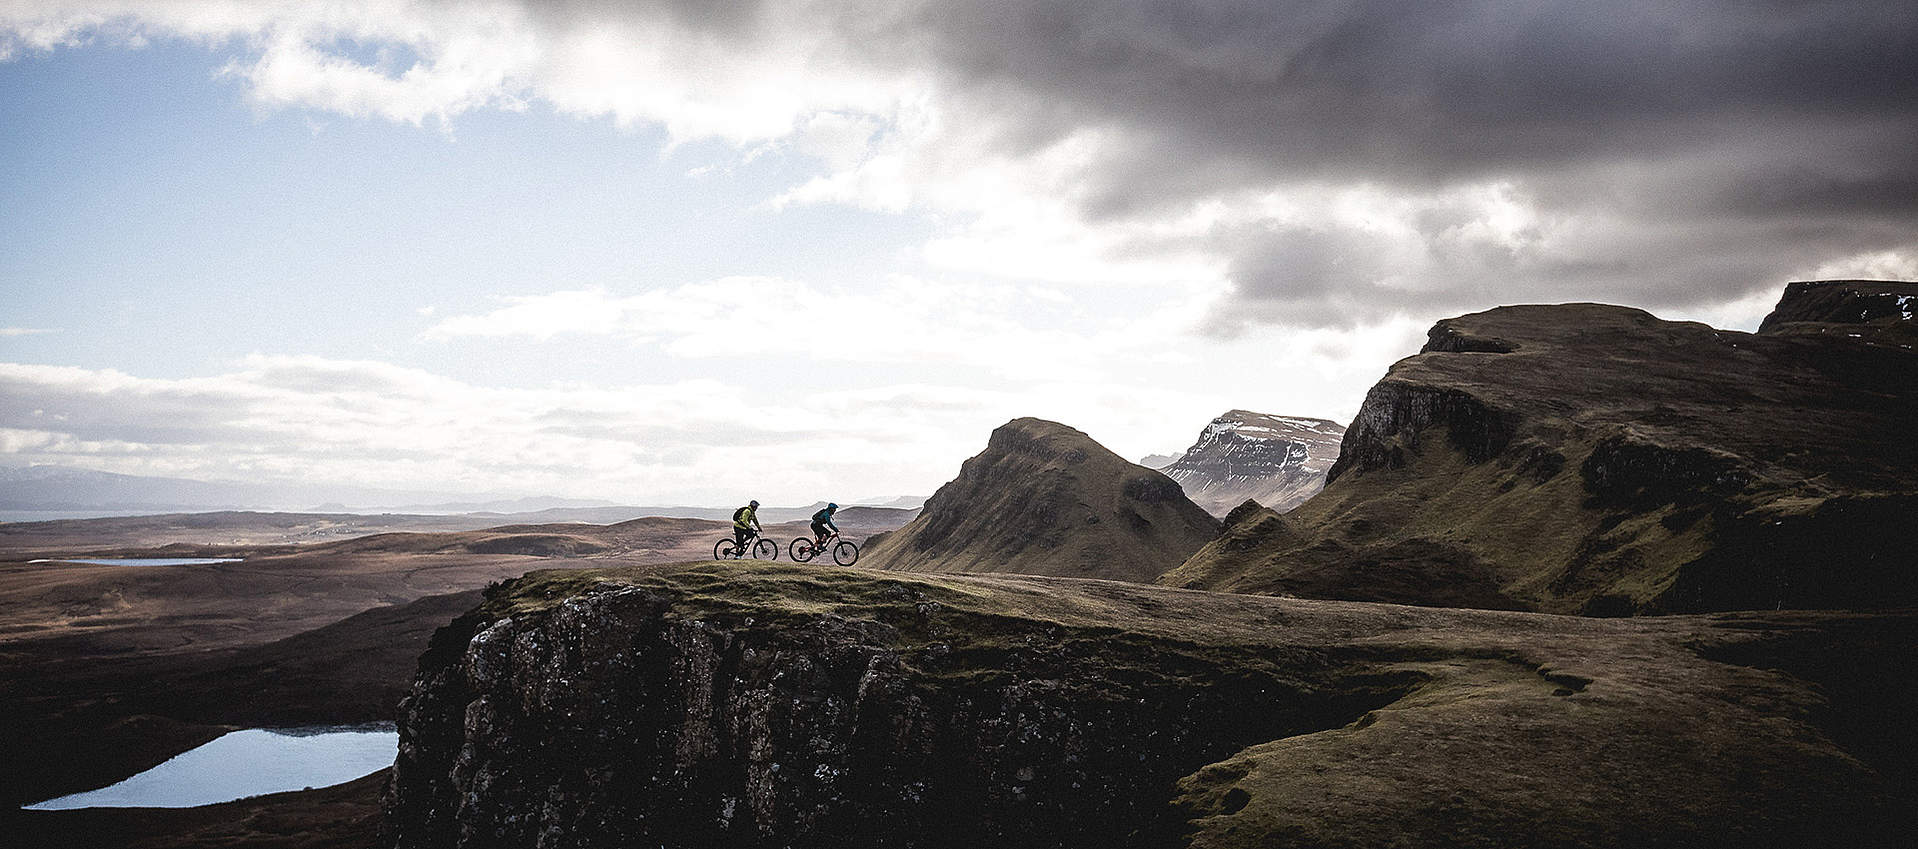 ENDURO MOUNTAINBIKEN IN SCHOTTLAND